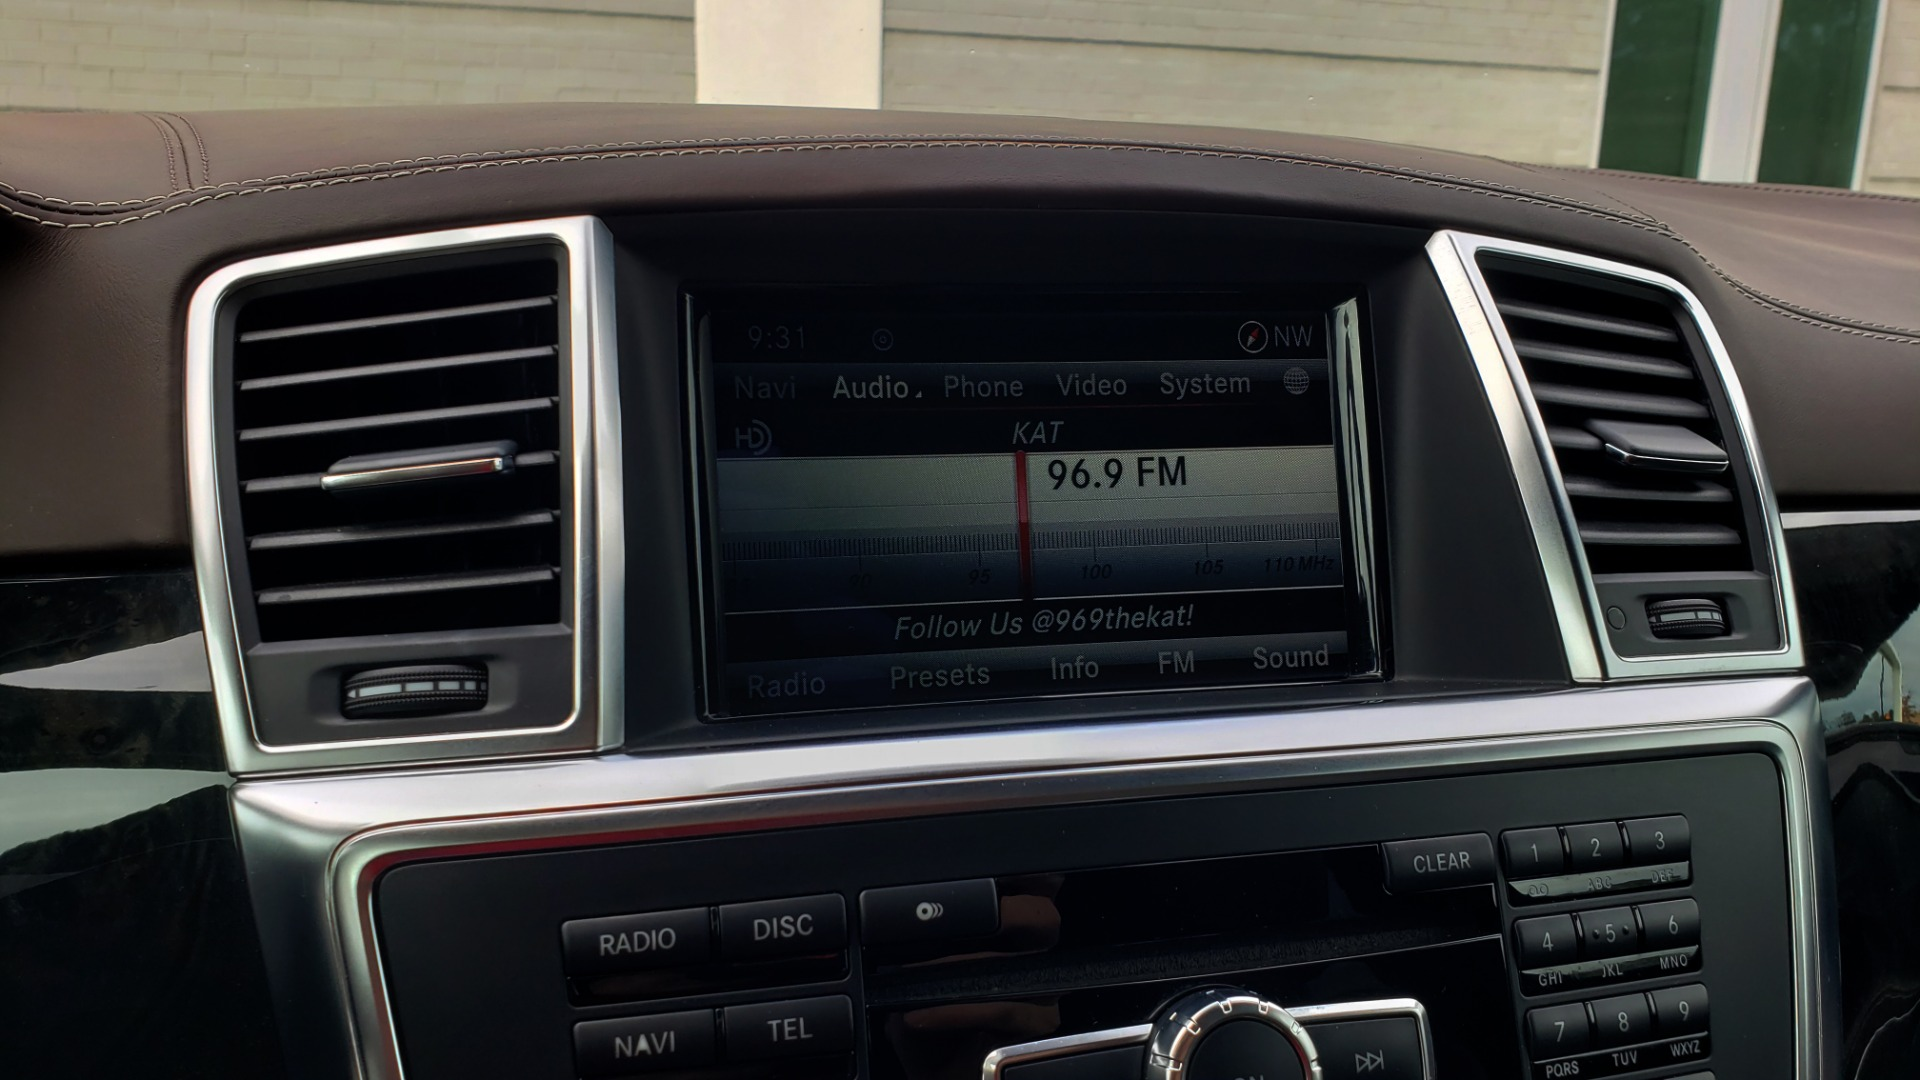 Used 2014 Mercedes-Benz GL-CLASS GL 63 AMG 4MATIC / NIGHT VIEW ASSIST PLUS / BANG & OLUFSEN SND for sale Sold at Formula Imports in Charlotte NC 28227 53